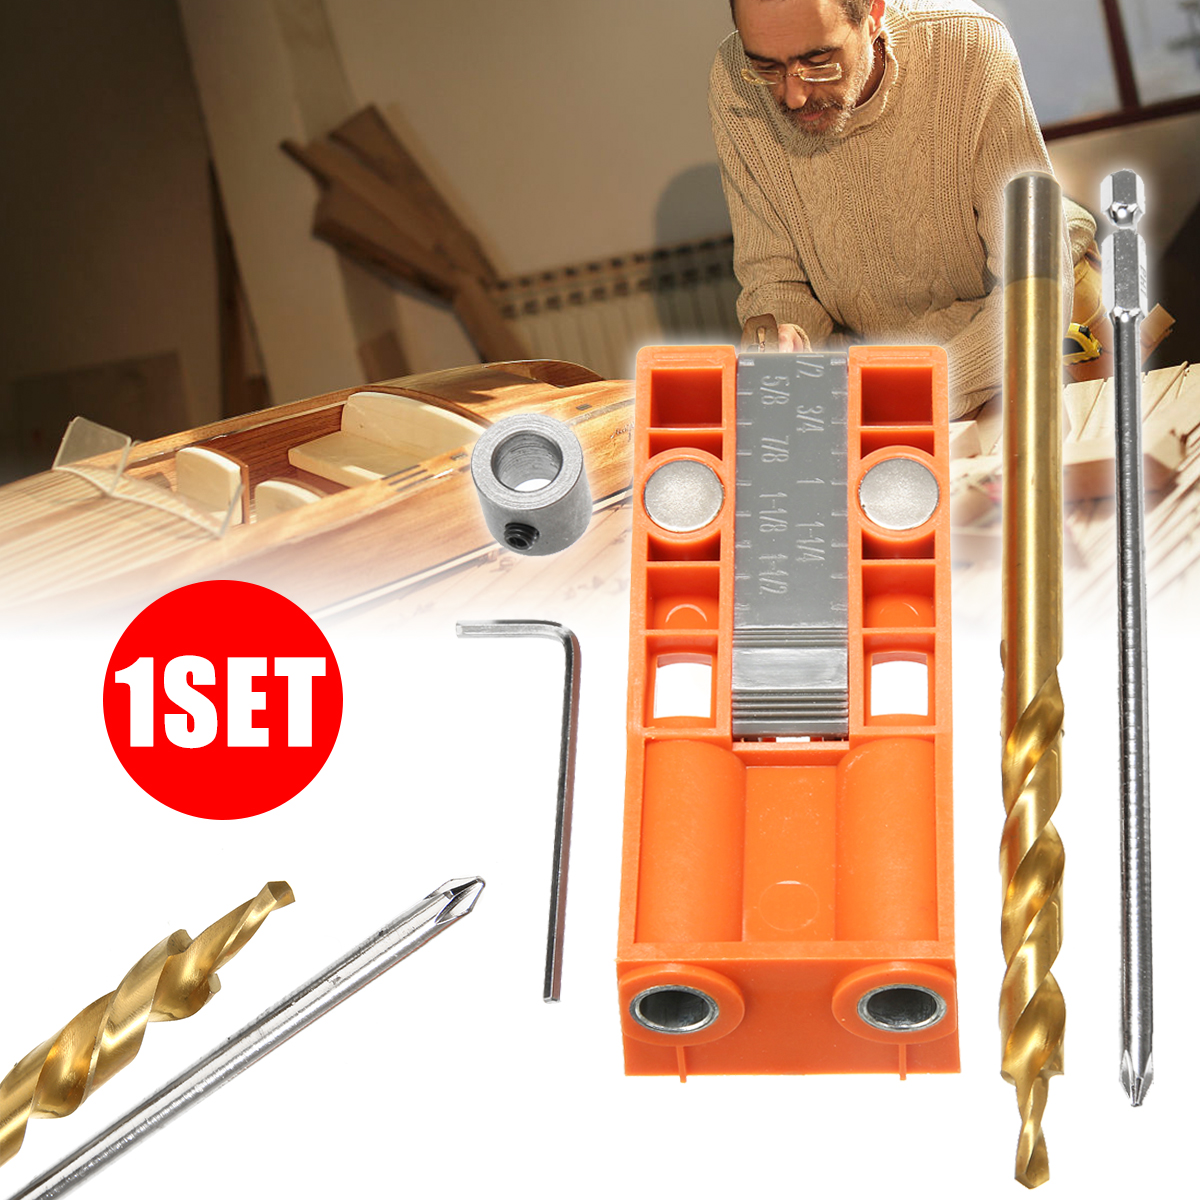 1 set New Jig R3 Pocket Hole Jig Kit Pocket Hole Wood Joinery Step Drill Bit woodworking Inclined hole locator